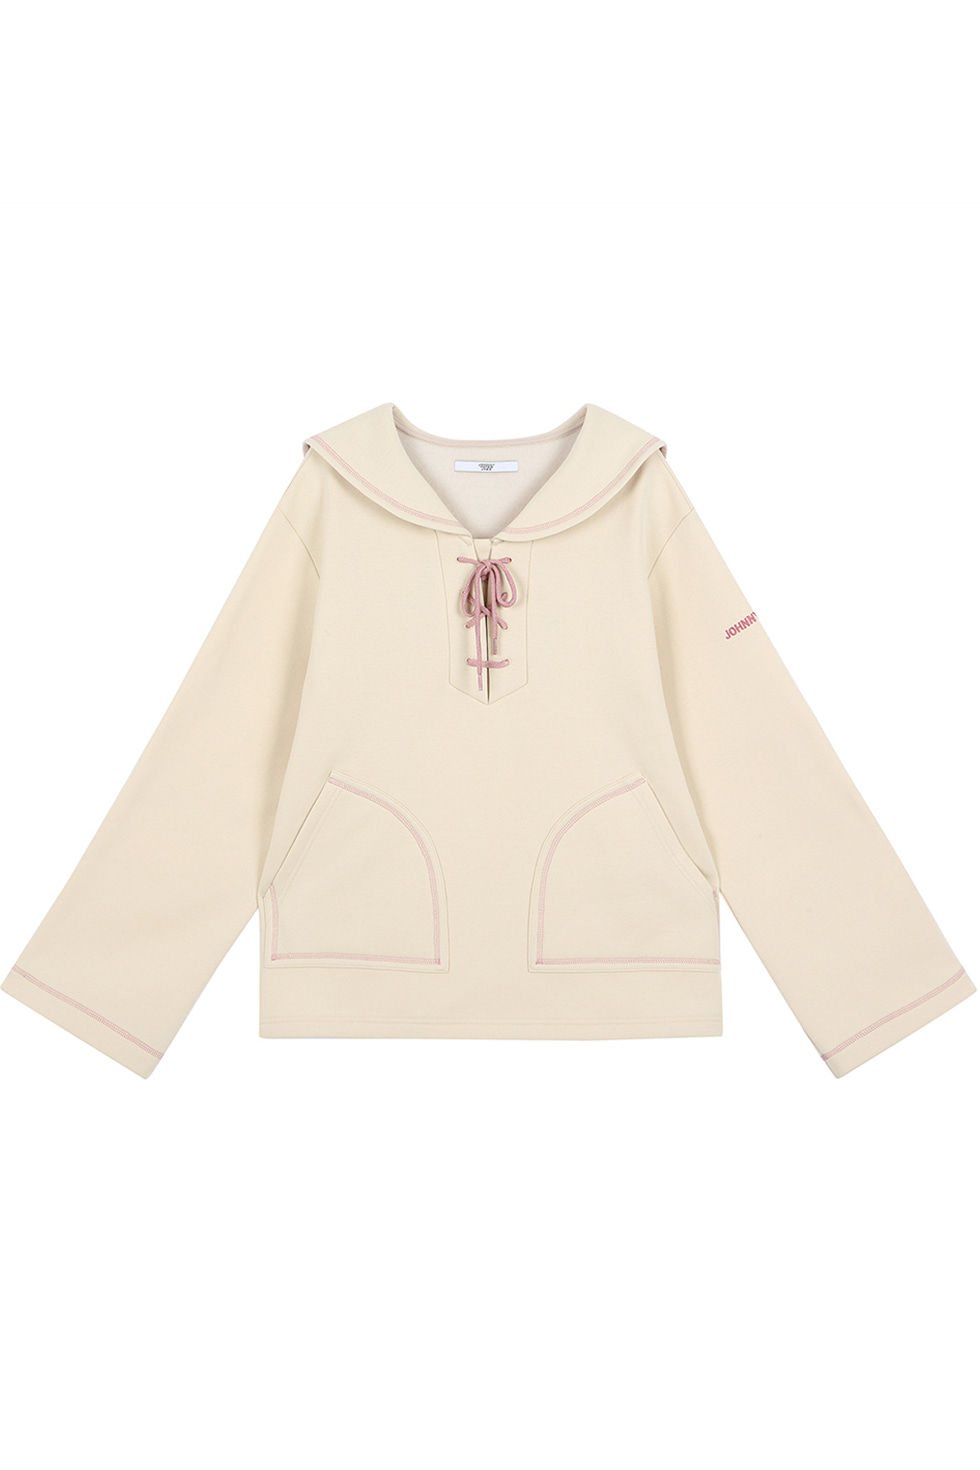 SAILER COLLAR PULLOVER - IVORY